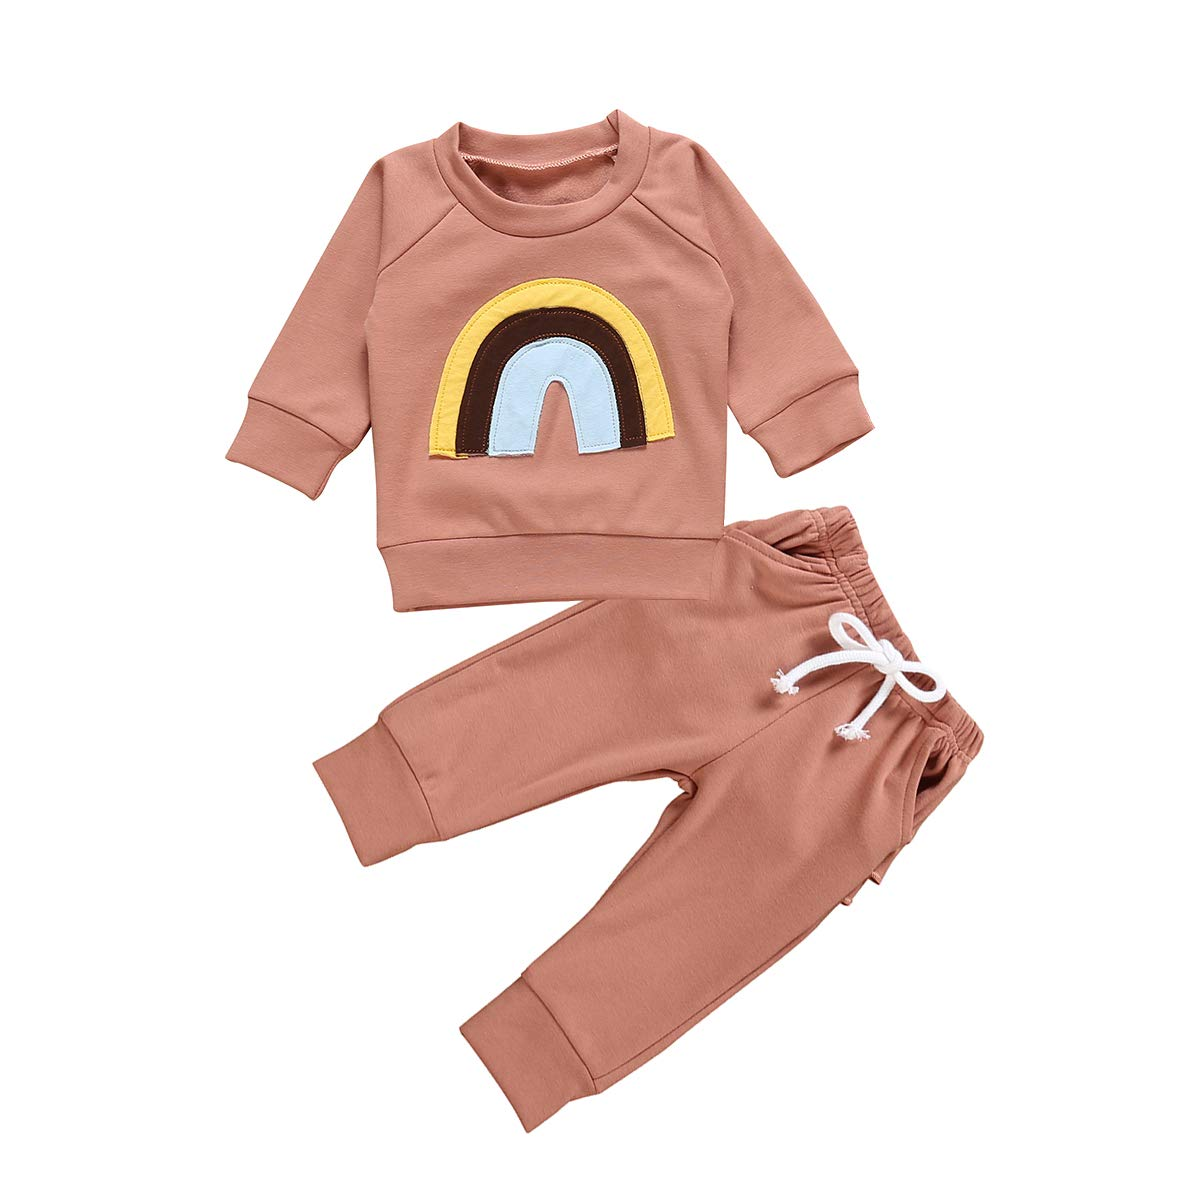 Infant Baby Girls Outfits Rainbow Print Long Sleeve Pullover T-Shirt Tops + Ruffle Pant Clothes Set